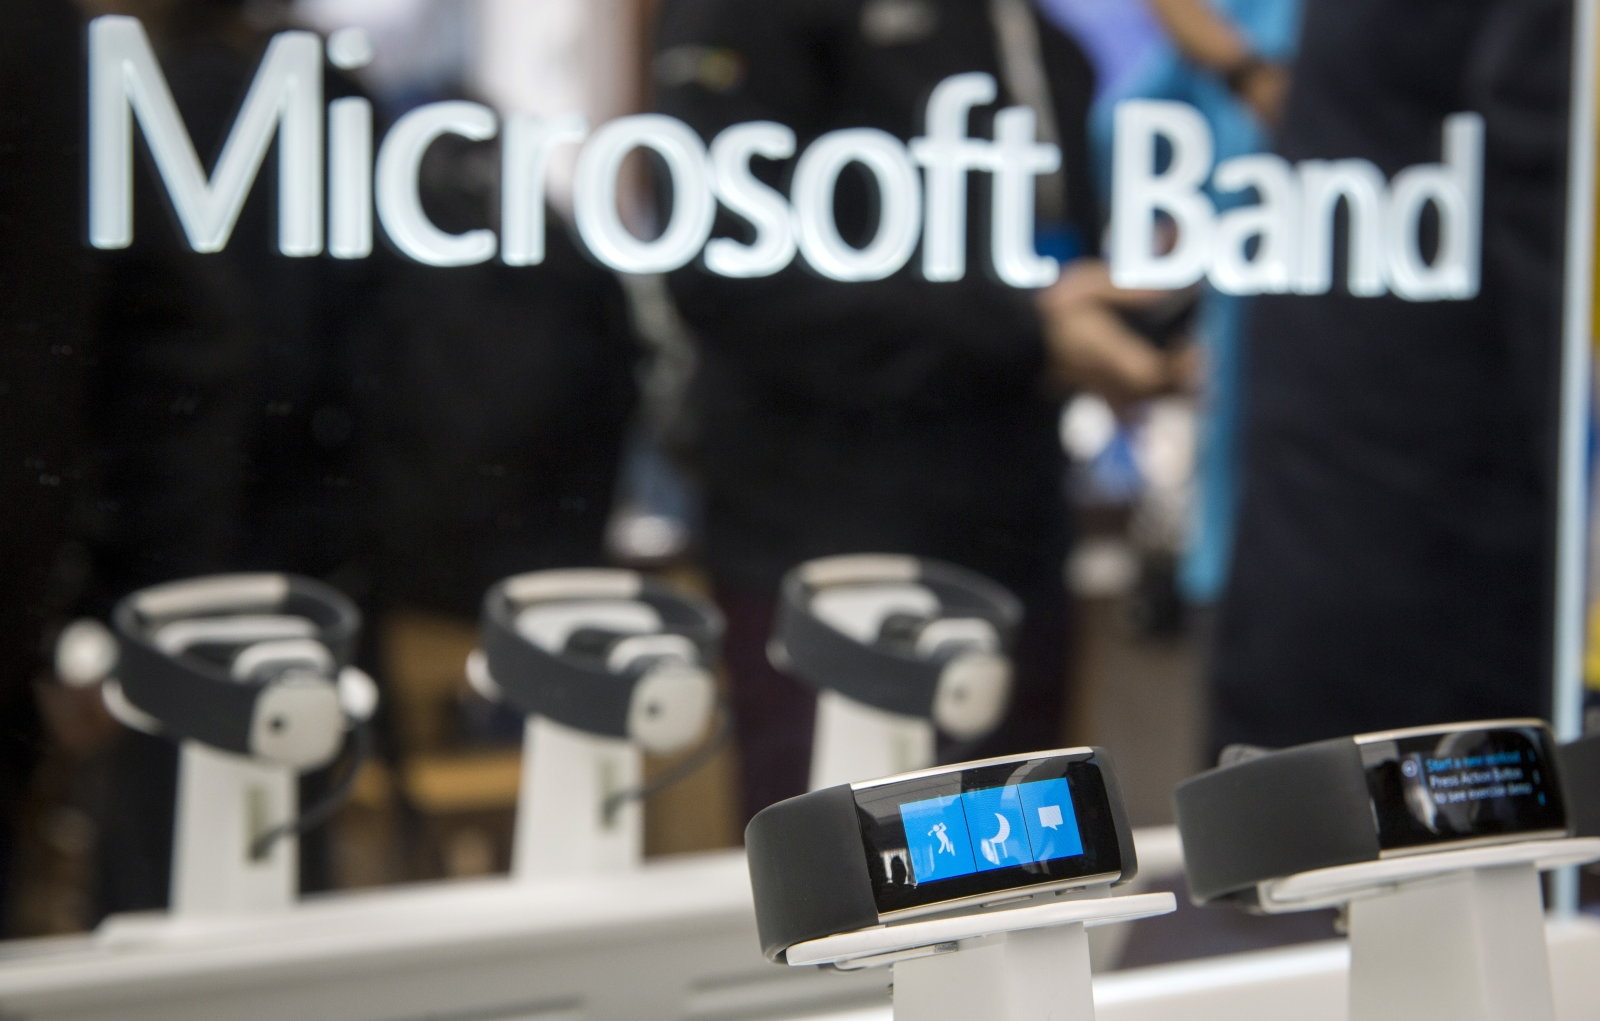 Microsoft ends support for the Band wearable on May 31st | DeviceDaily.com